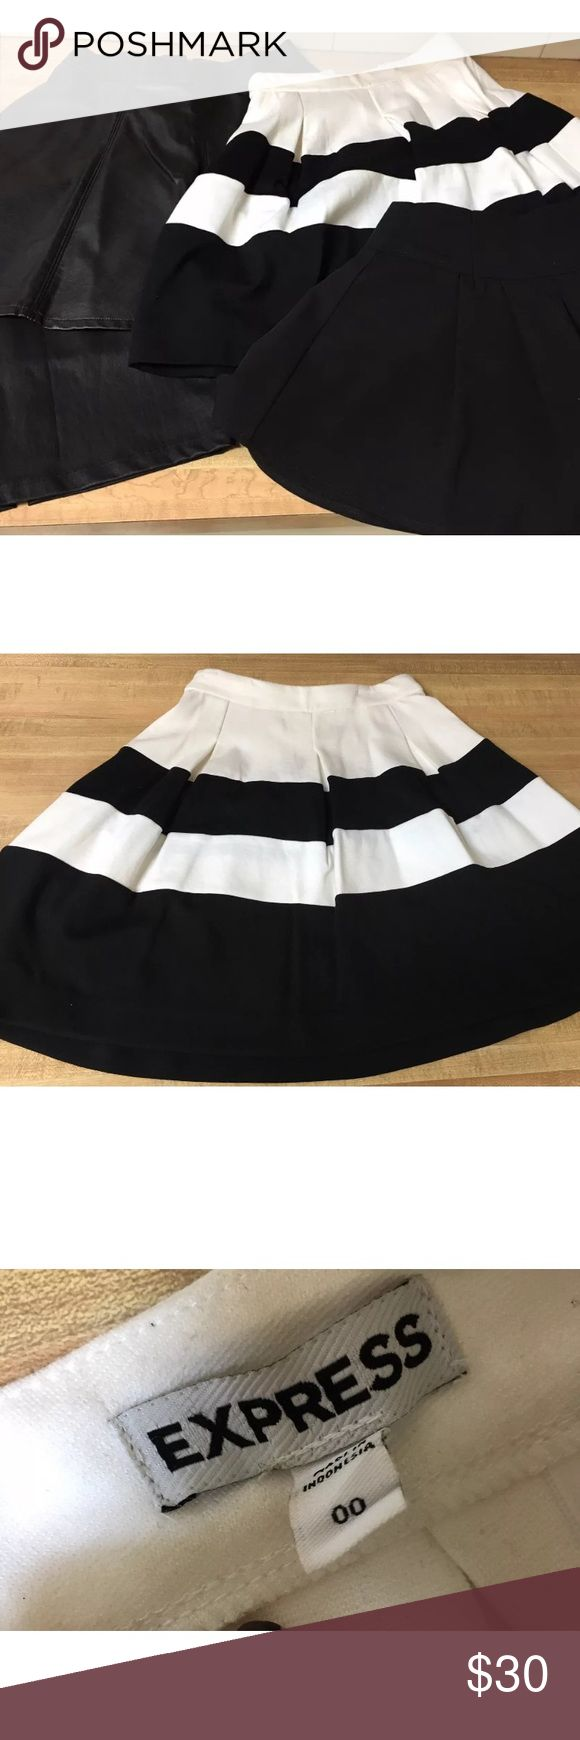 4 SKIRTS BUNDLE LOT H&M EXPRESS FOREVER 21 4 BEAUTIFUL WOMENS SKIRTS IN GREAT WORN CONDITION. EACH ONE WORN ONCE OR TWICE AS SHOWN IN PICTURES! 1. EXPRESS BLACK AND WHITE STRIPED SKIRT SIZE 00. 1. FOREVER 21 BLACK SKATER SKIRT SIZE XS. 1. H&M FAUX LEATHER SKATER SKIRT SIZE 2. 1. CENTURY 21 FAUX LEATHER PENCIL SKIRT WITH BACK SLIT SIZE SMALL. RETAILS OVER $120!!! Skirts